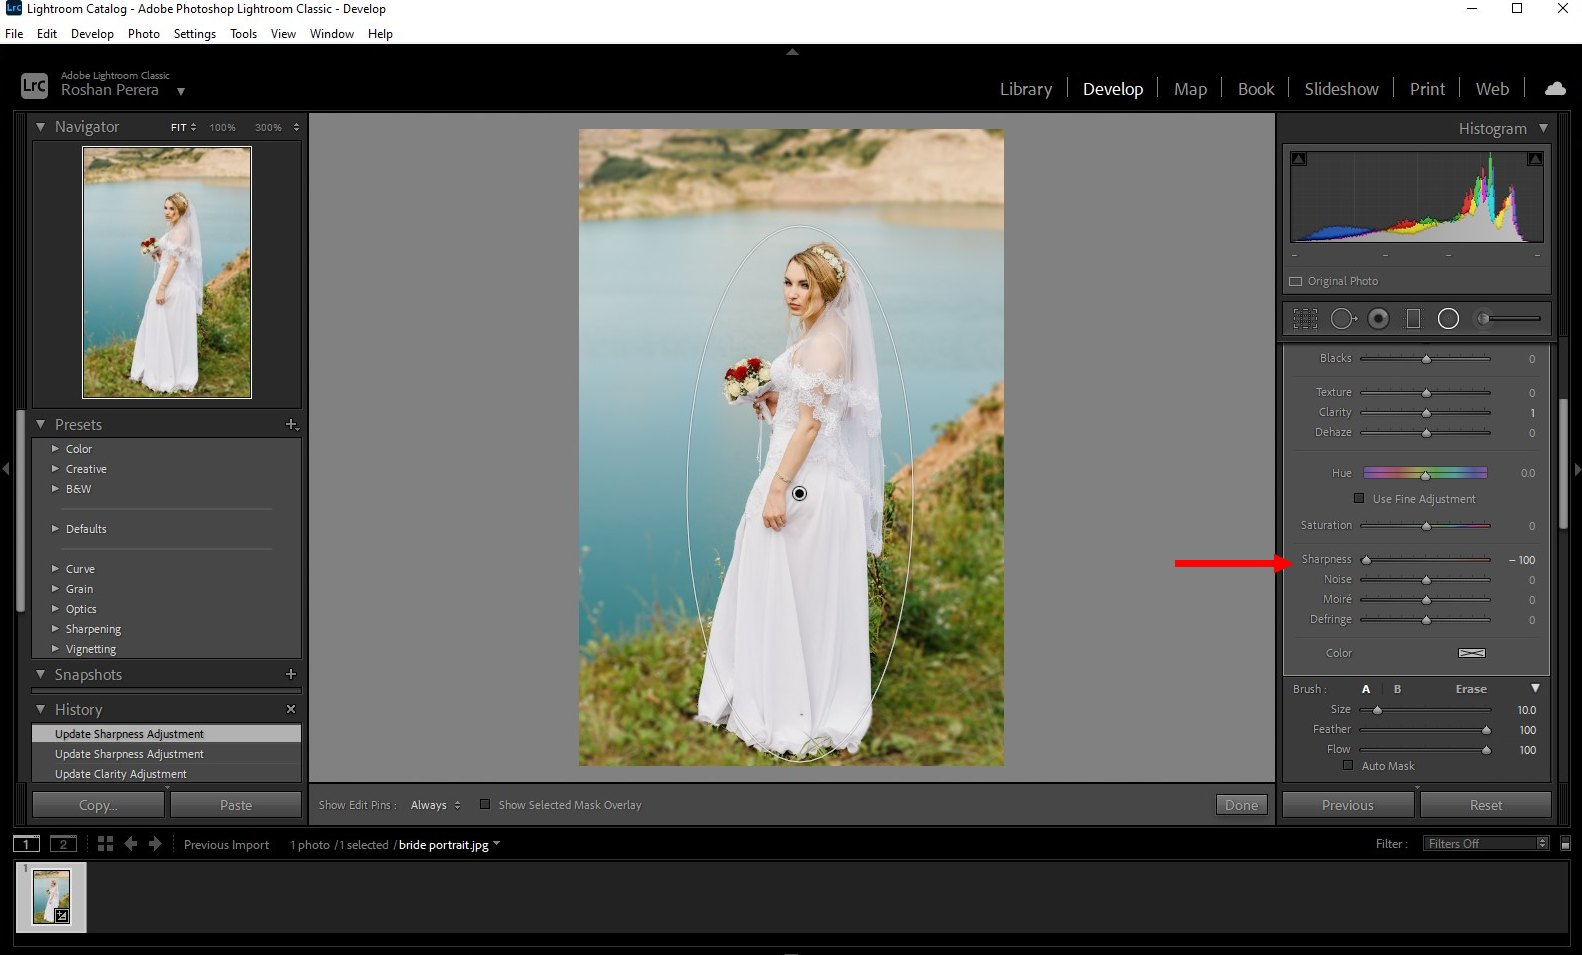 how to blur background lightroom classic - 4